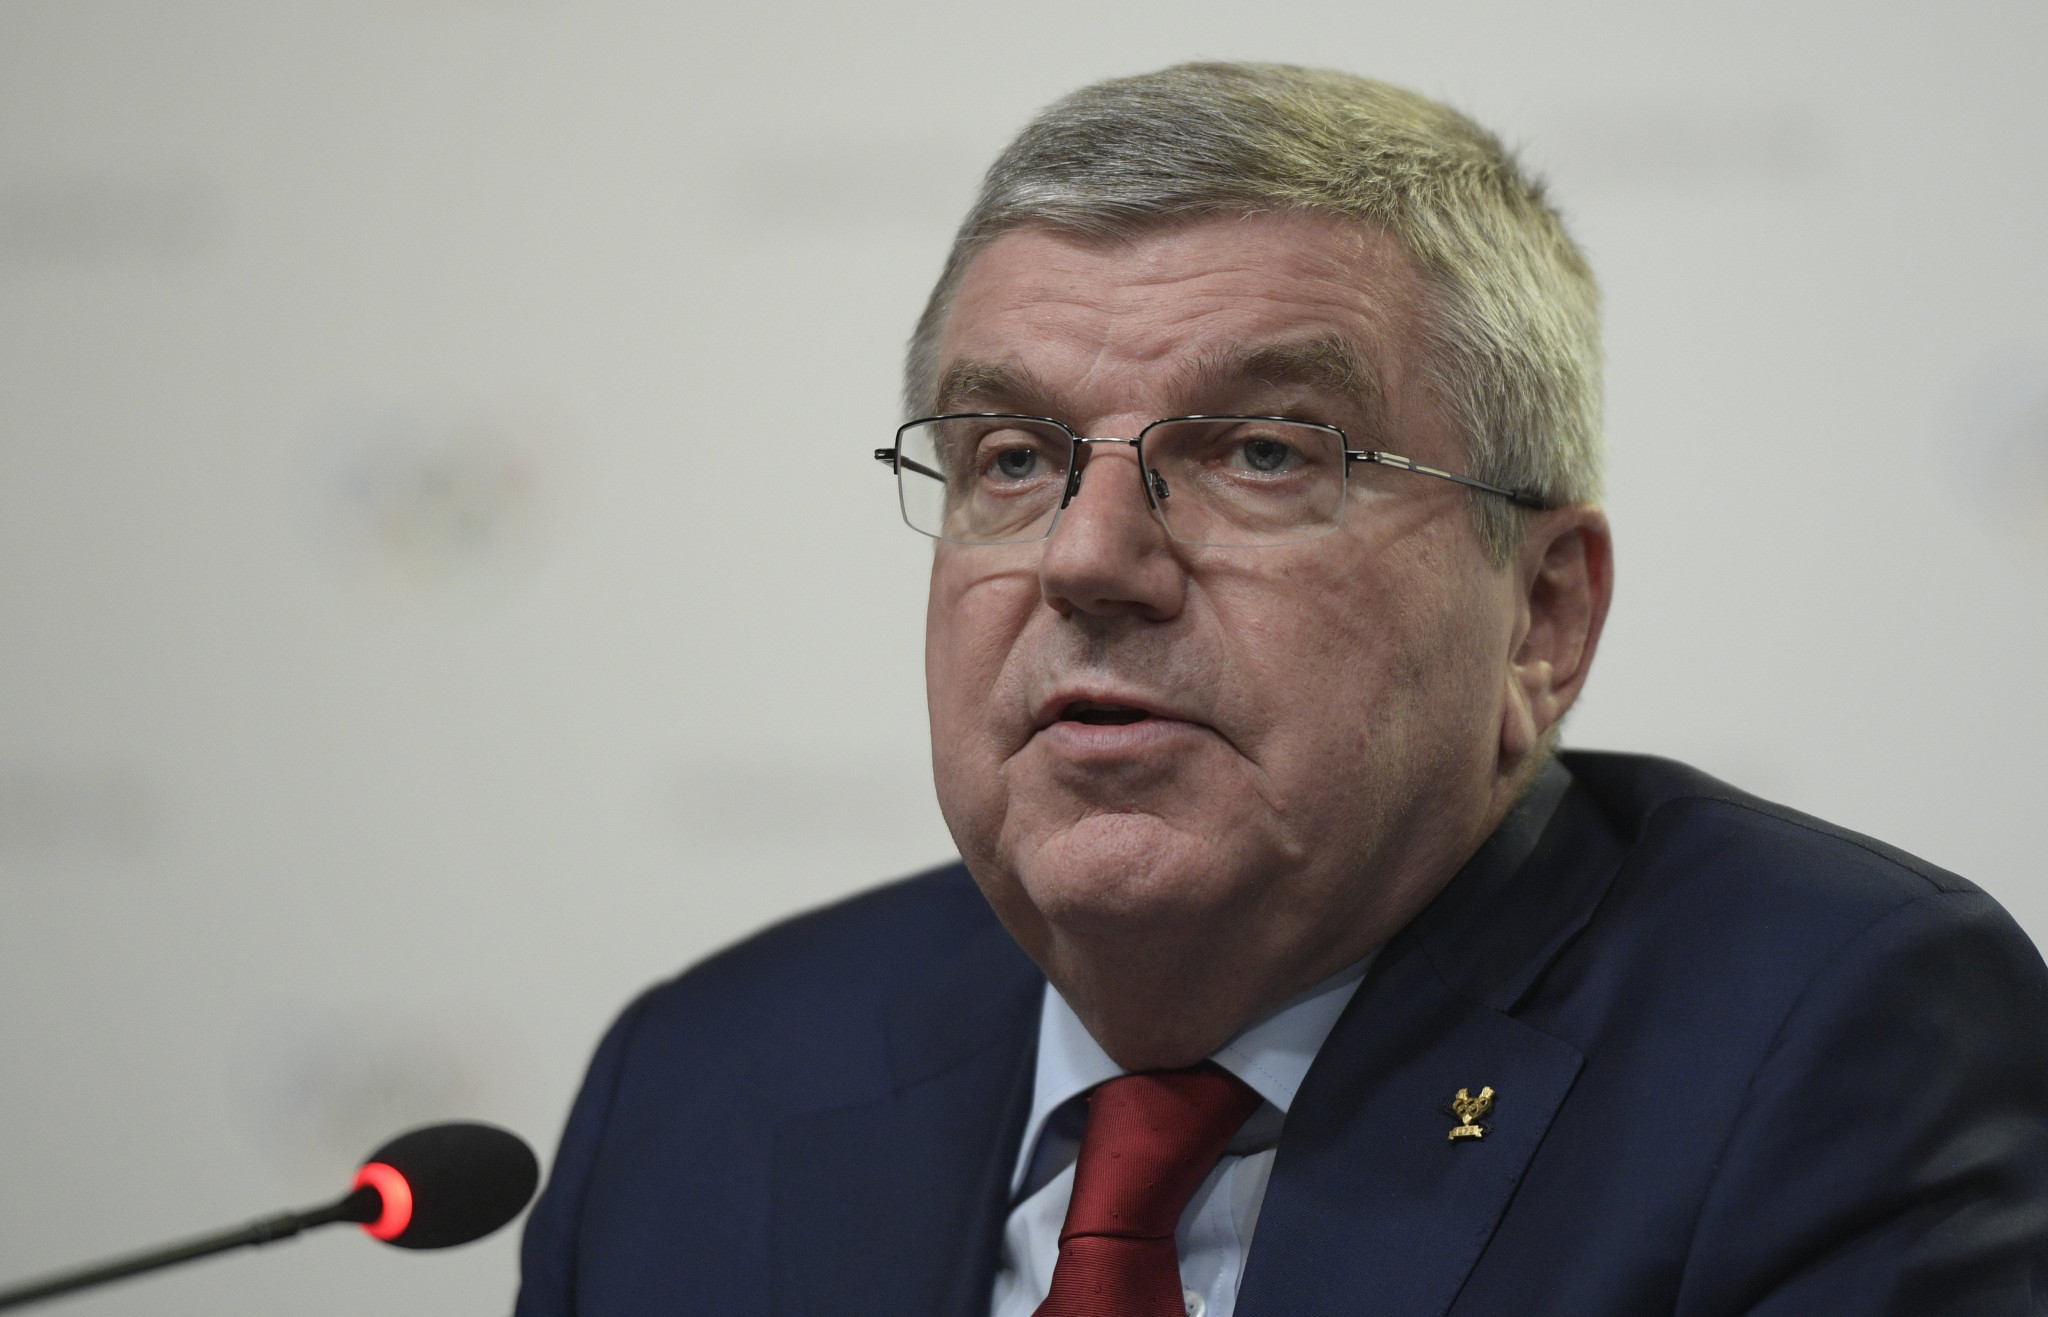 IOC President Thomas Bach has persistently called on the Olympic Movement to prevent the restriction placed on athletes from countries such as Kosovo ©Getty Images